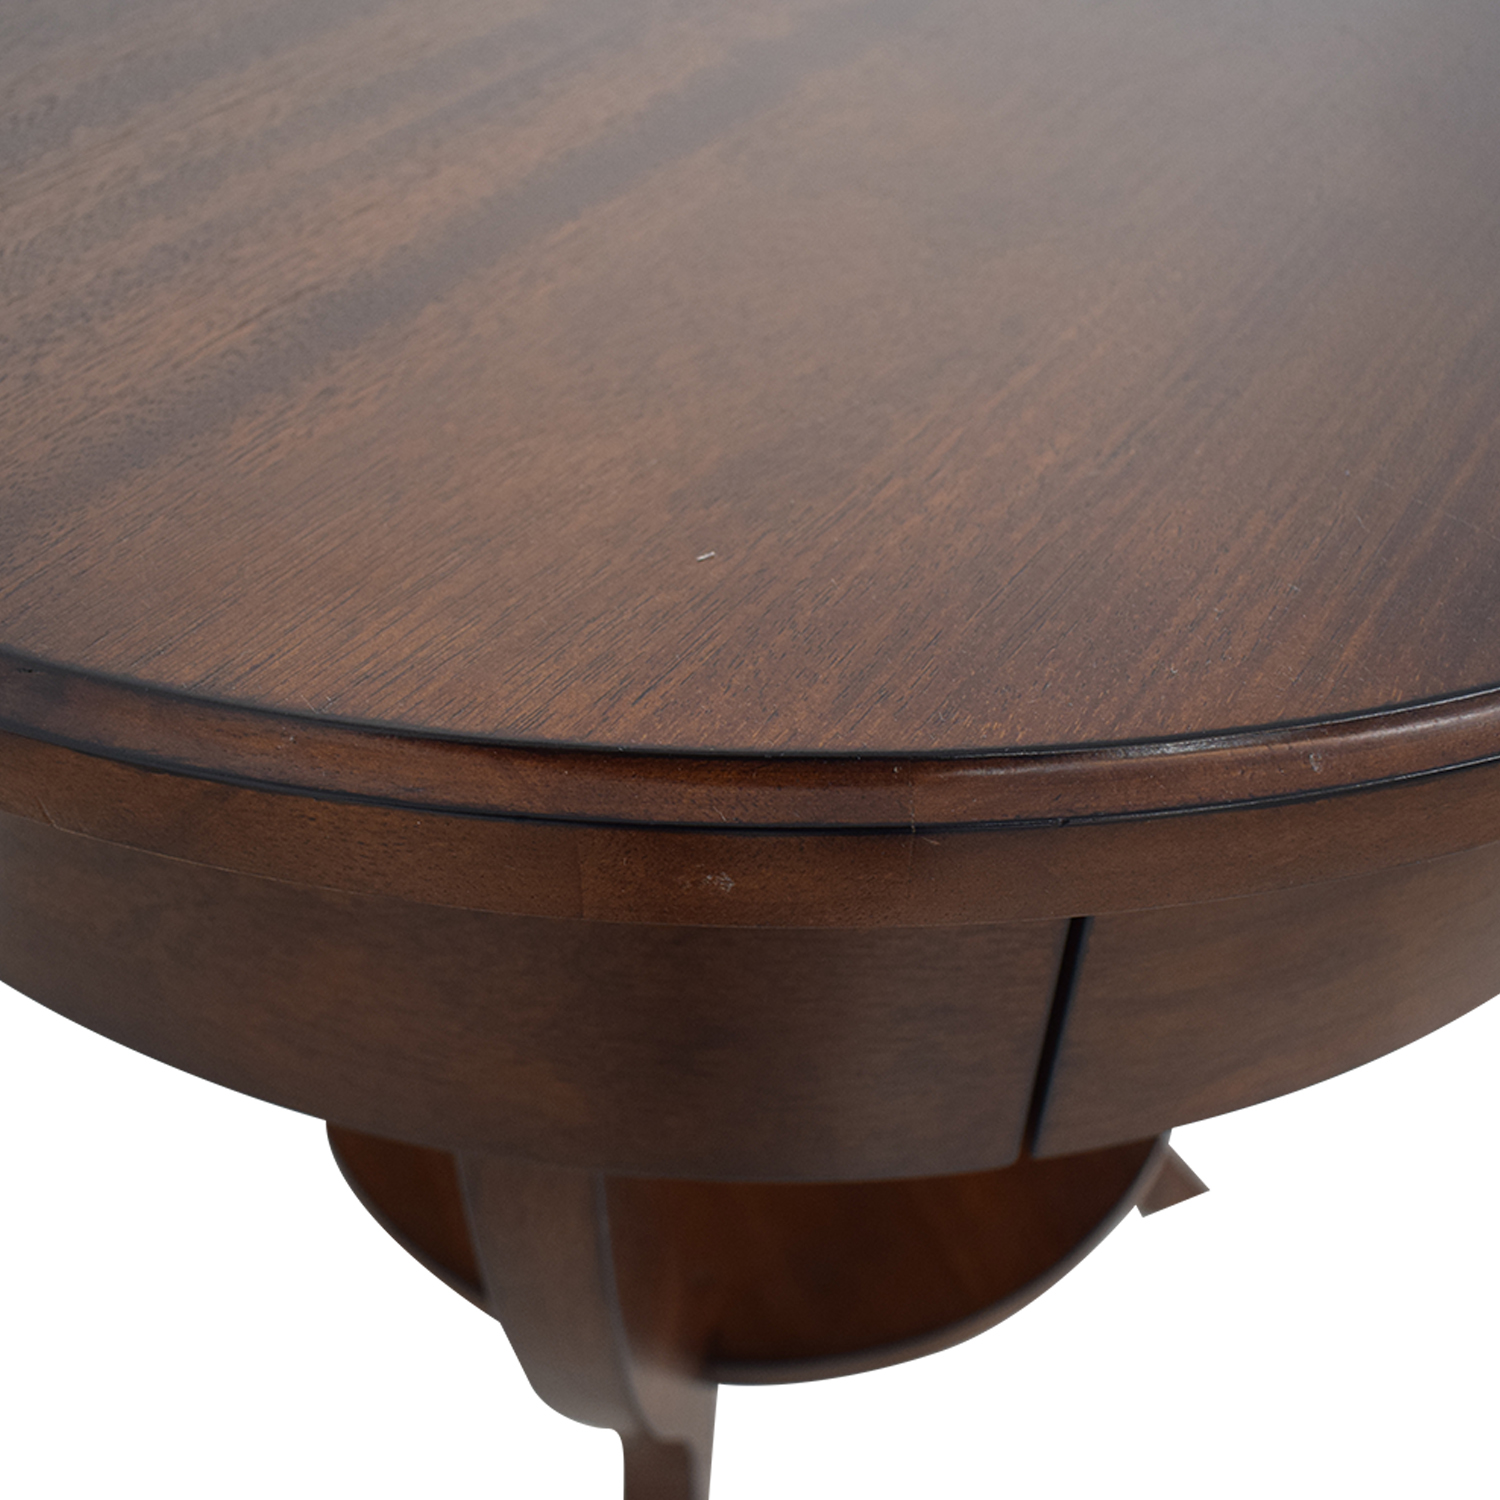 Pottery Barn Pottery Barn Carrie Round Single-Drawer Pedestal End Tables brown